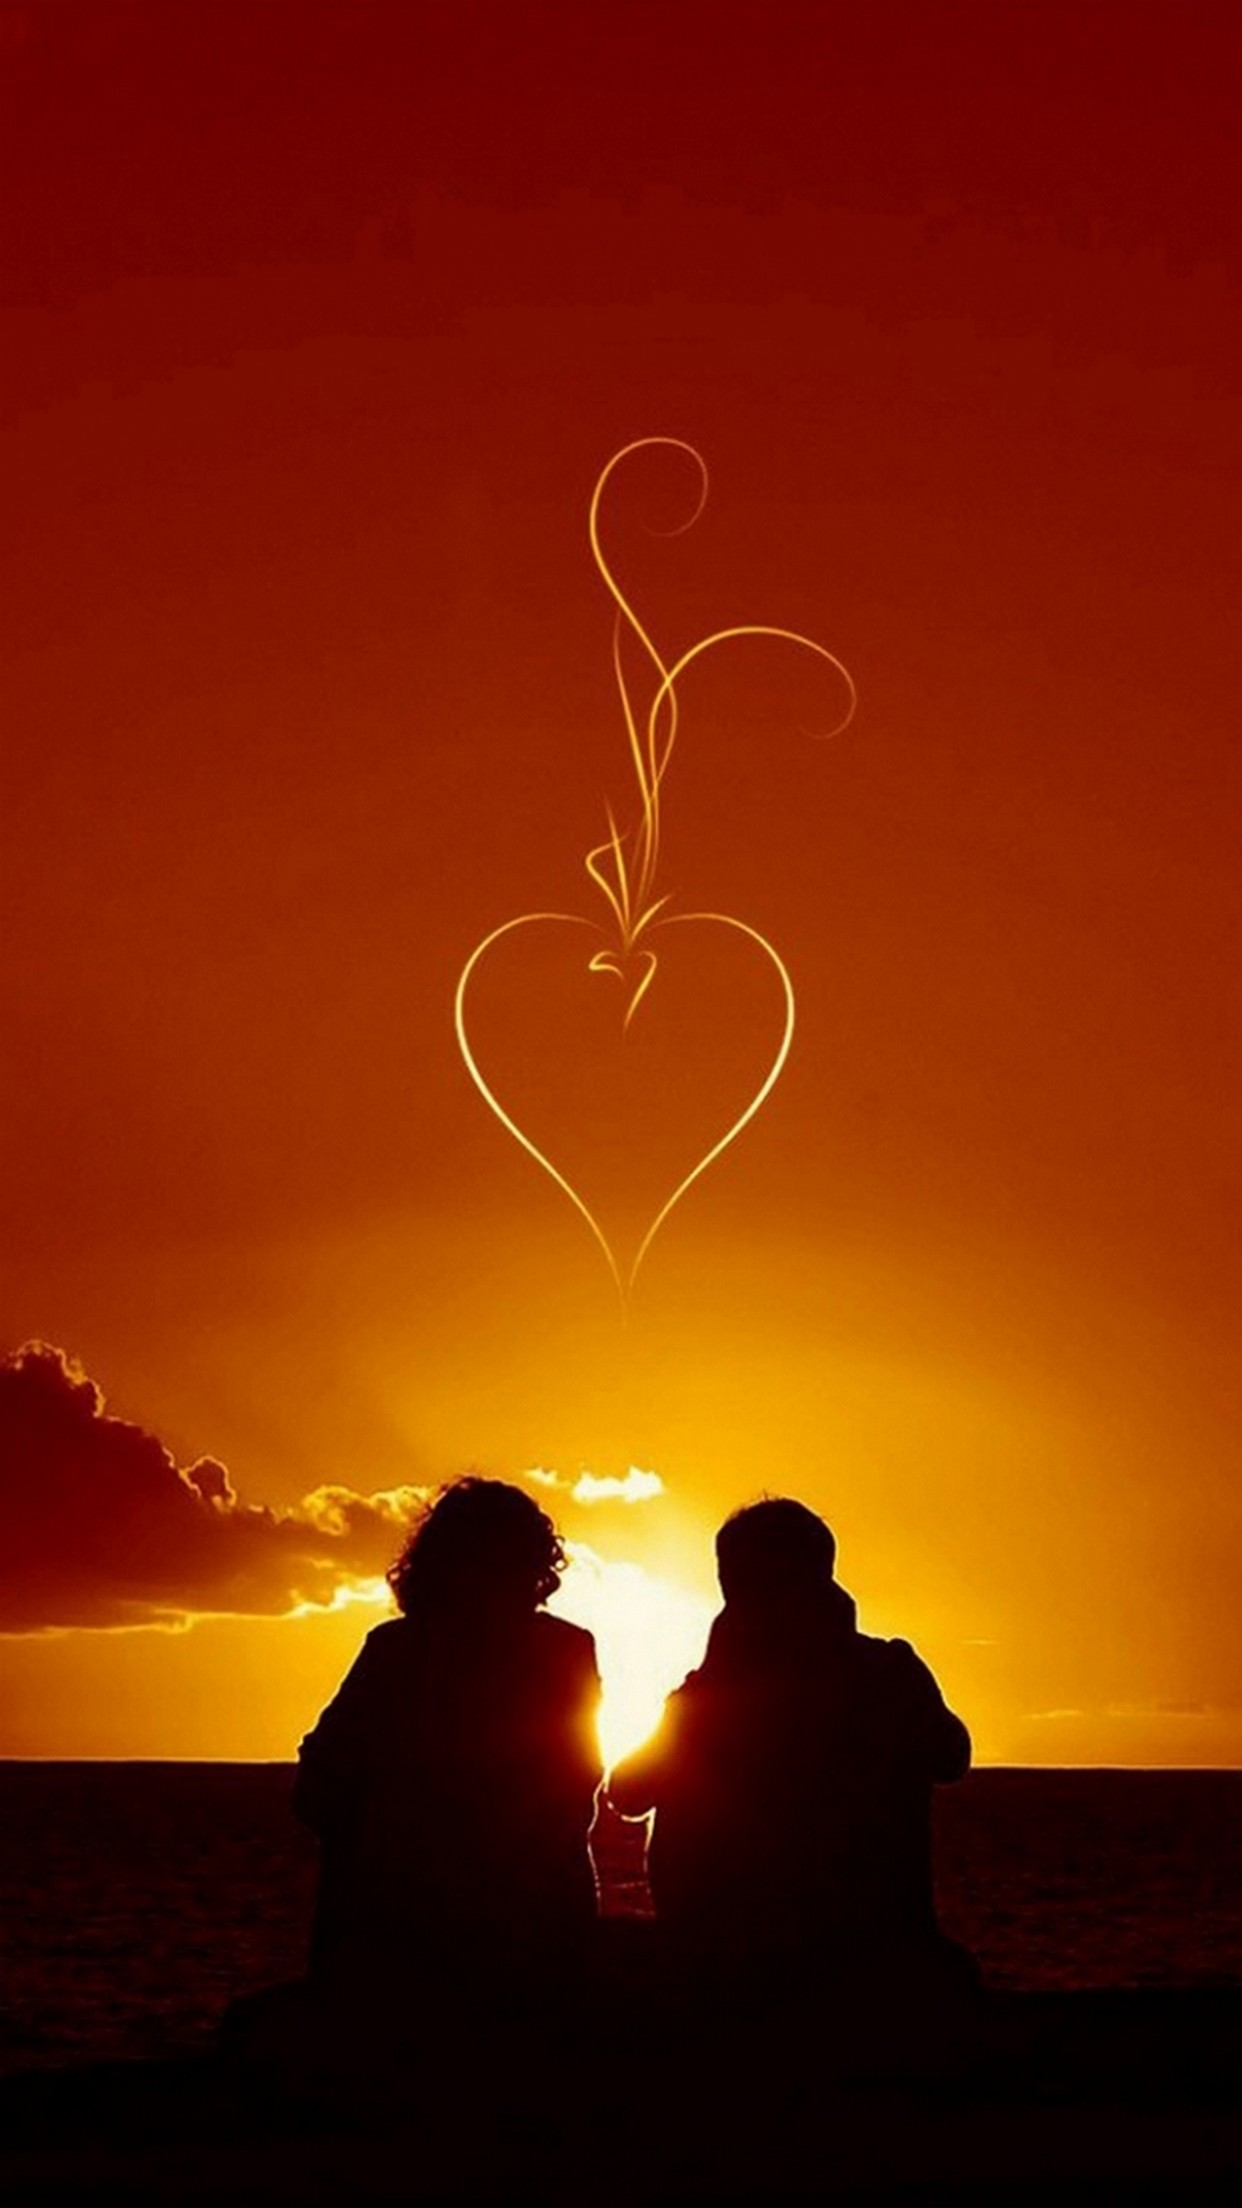 Love Wallpaper Hd For I Phone : Love Wallpapers Images ??